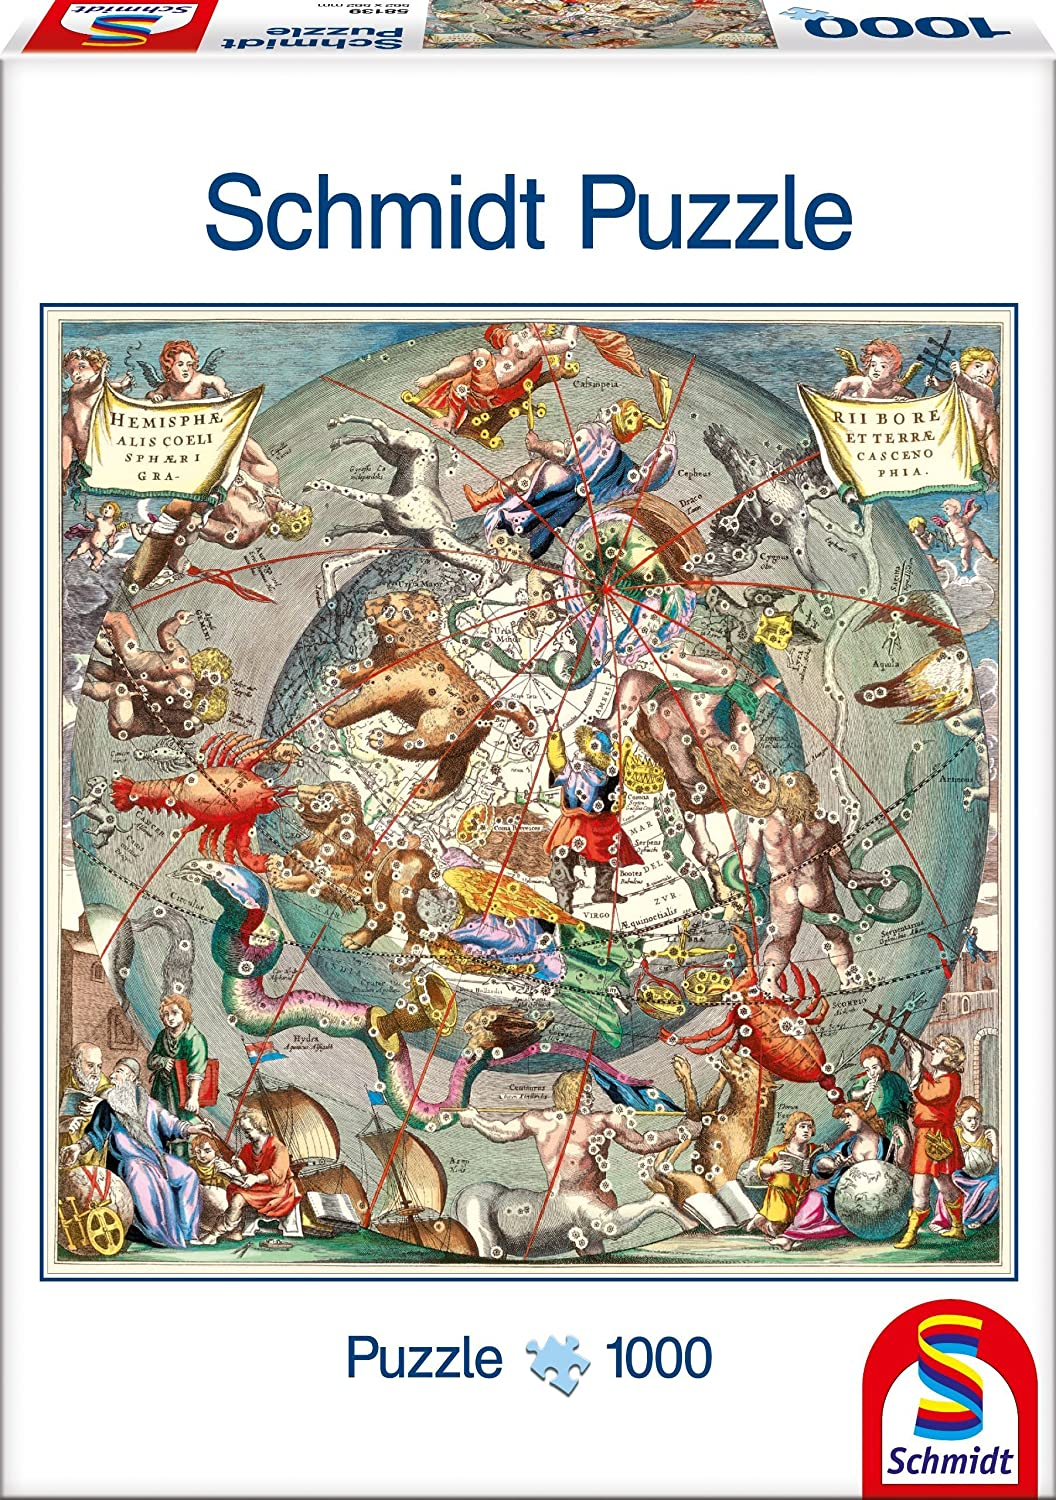 Schmidt ancient astrological map adult jigsaw puzzle 1000 pieces schmidt ancient astrological map adult jigsaw puzzle 1000 pieces amazon toys games gumiabroncs Image collections